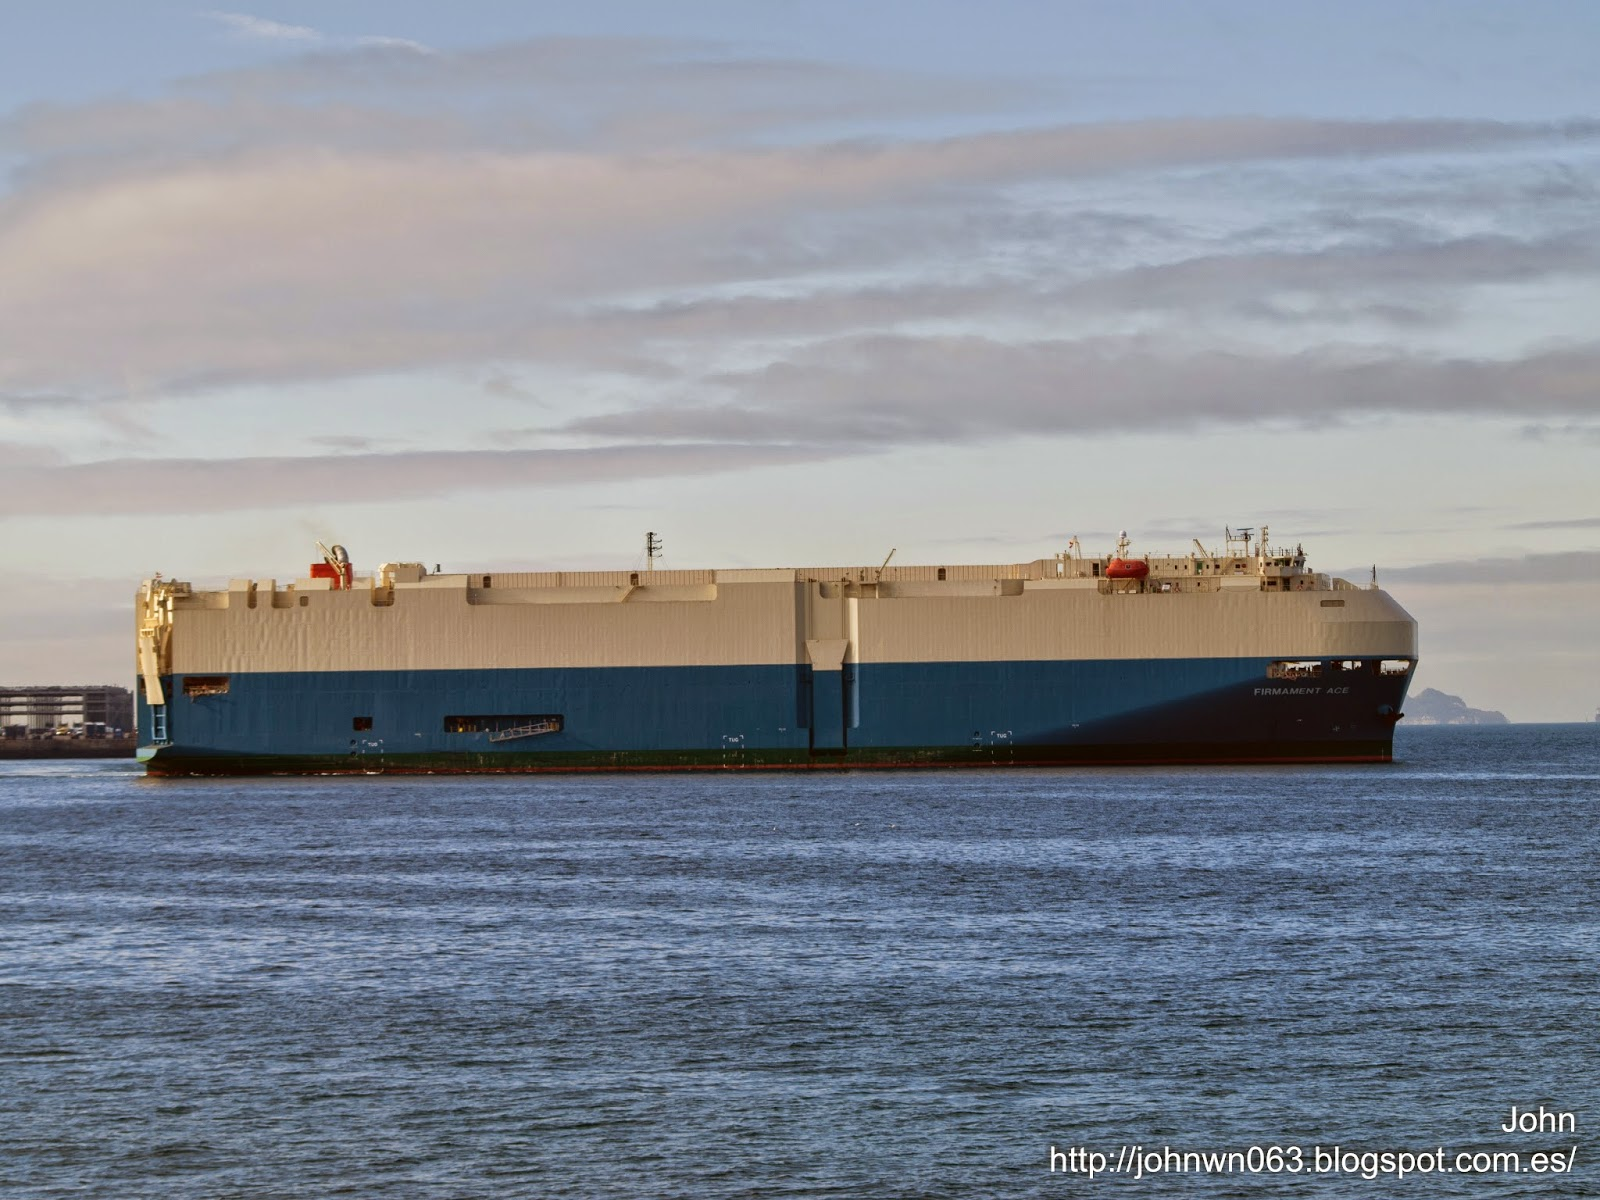 fotos de barcos, imagenes de barcos, firmament ace, MOL, car carrier, vigo